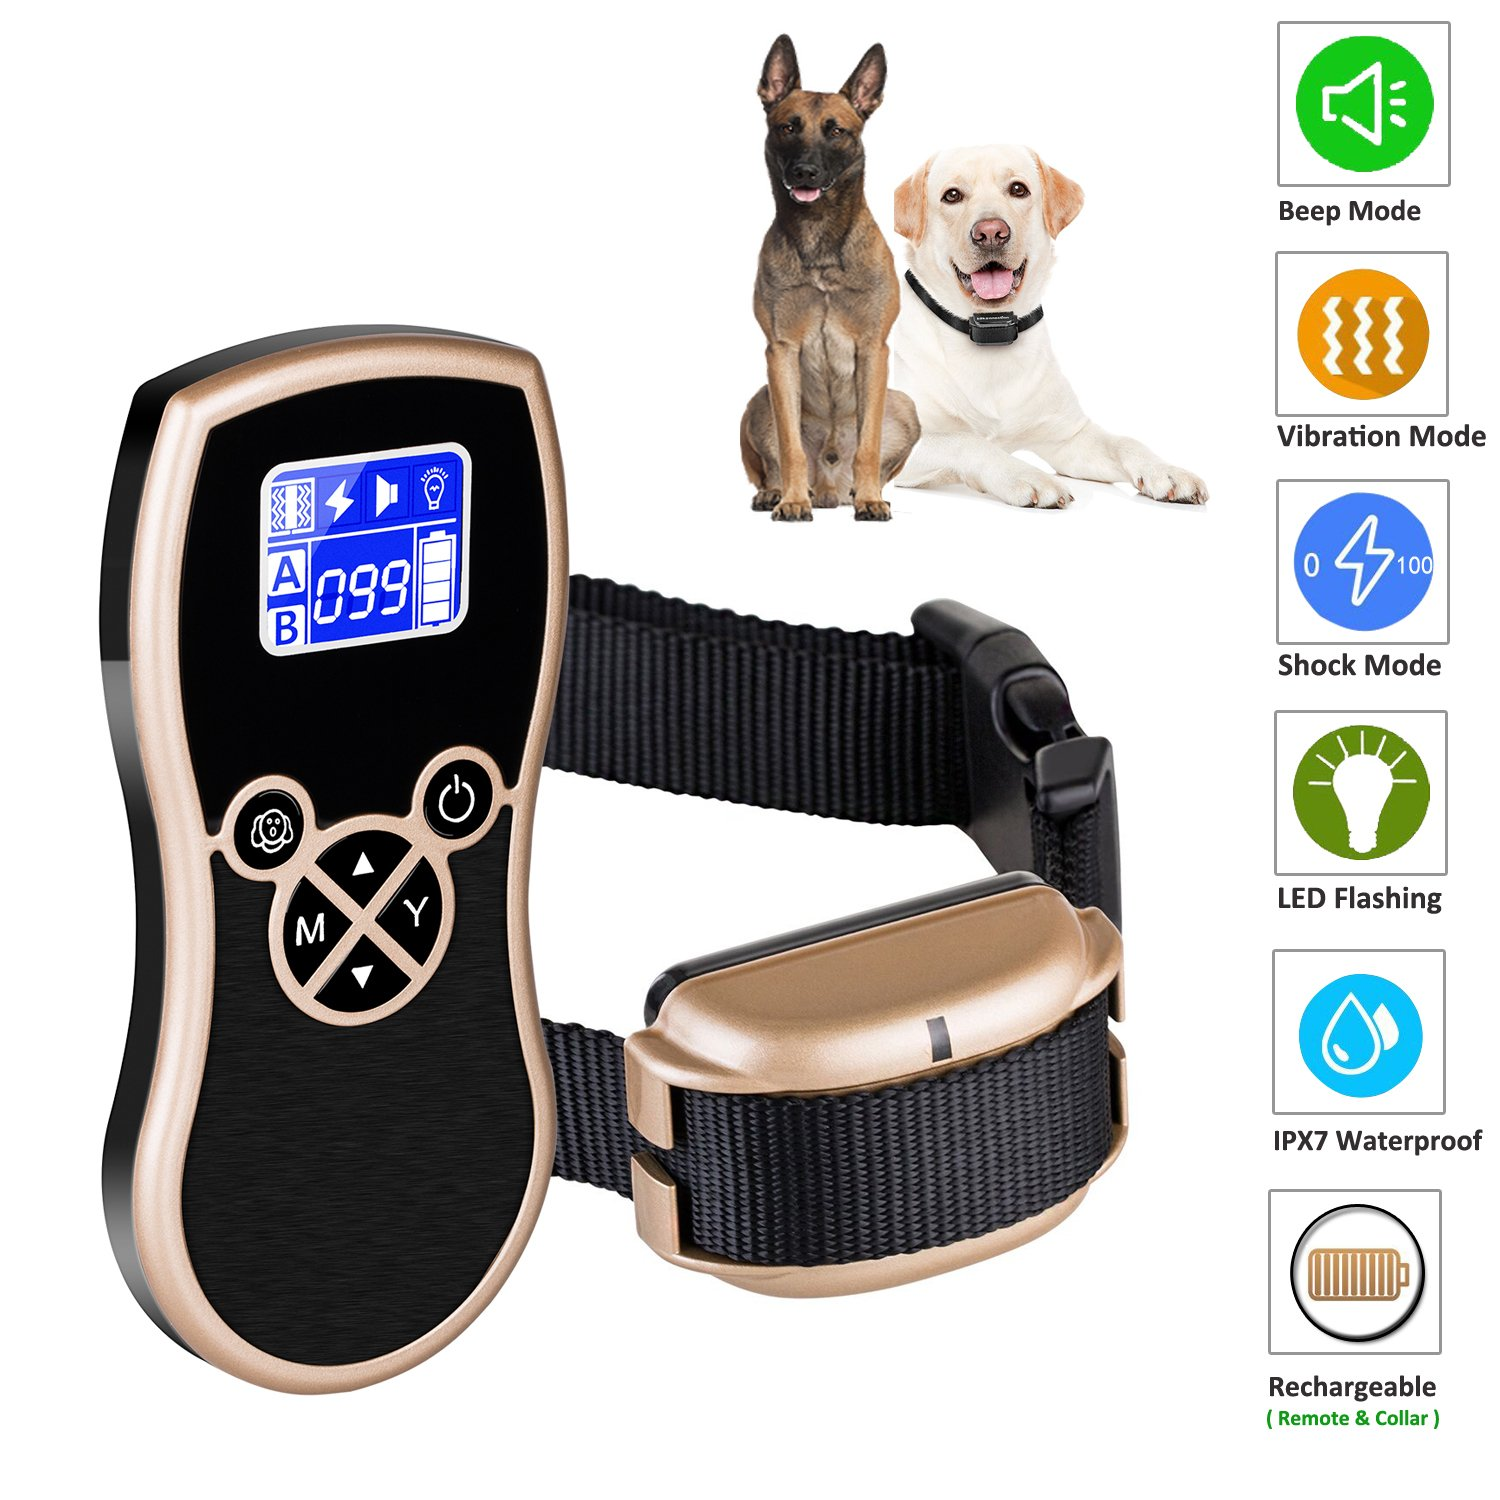 Newpets 450 Yards Remote Dog Training Collar (2018 Premium Version) Rechargeable Waterproof Dog Training Shock Collar with Beep Vibration Shock Electric Collar Dogs (1 Dog Collar)